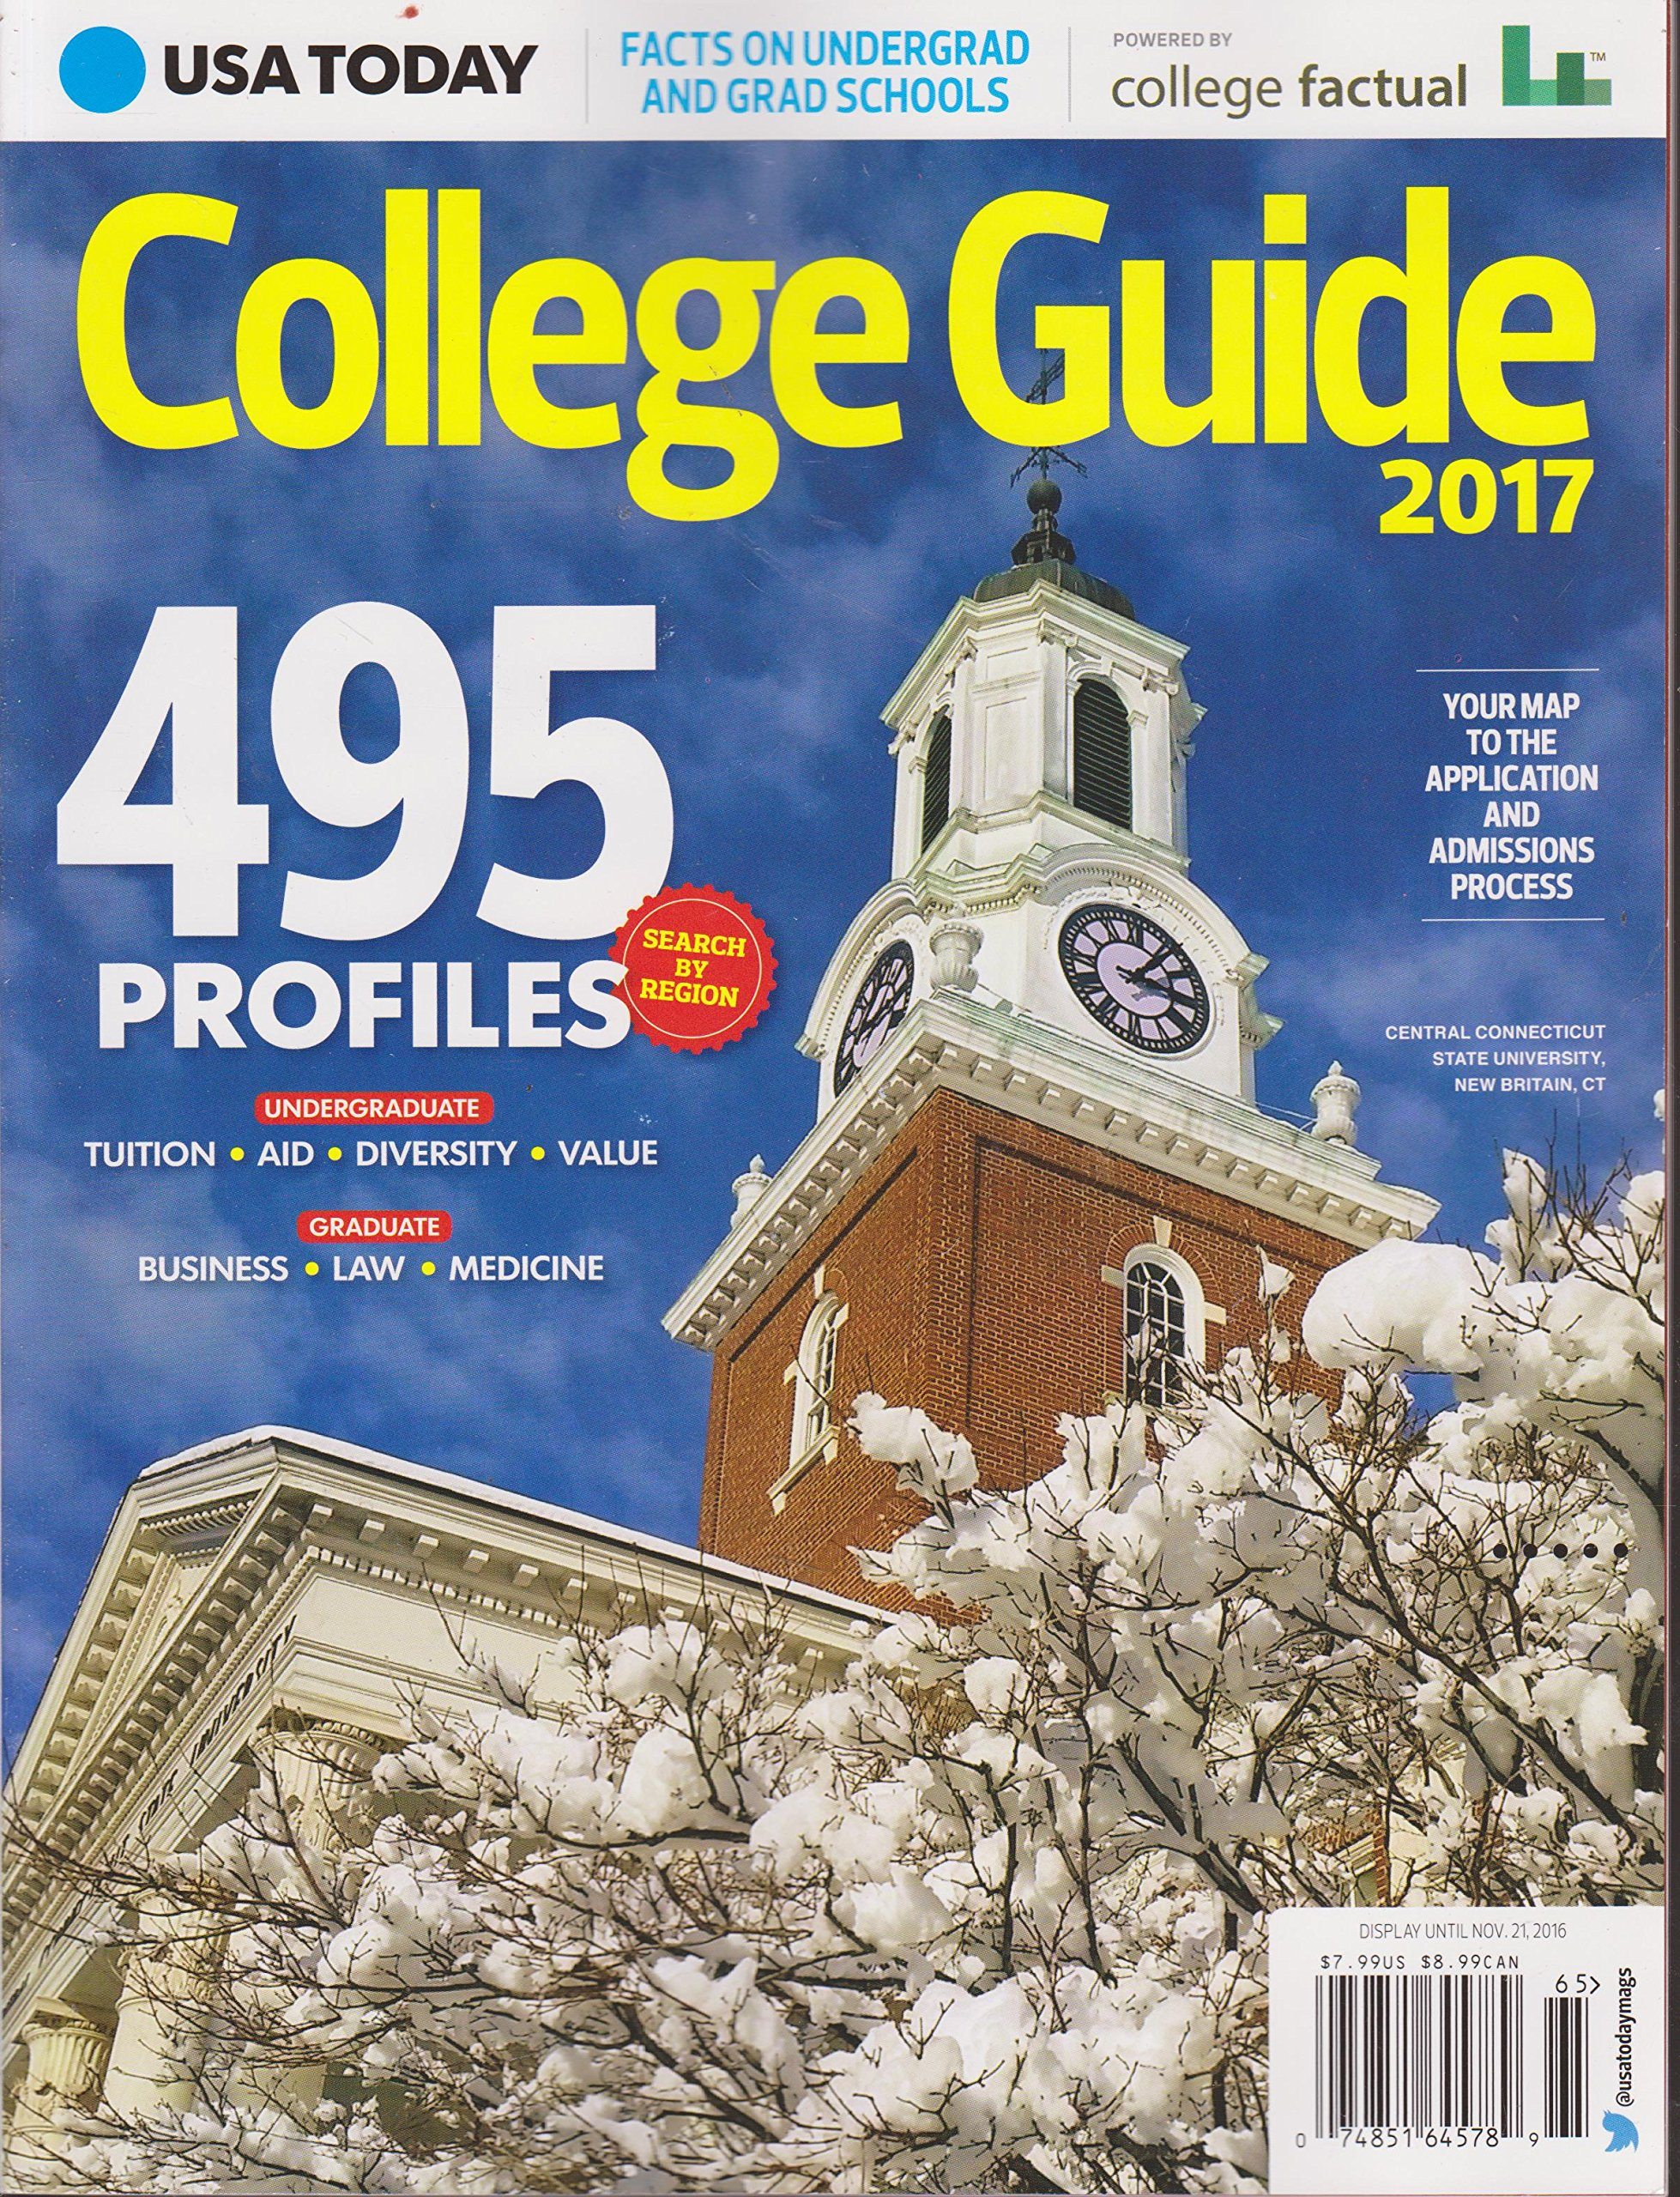 Read Online USA Today College Guide 2017 Text fb2 ebook